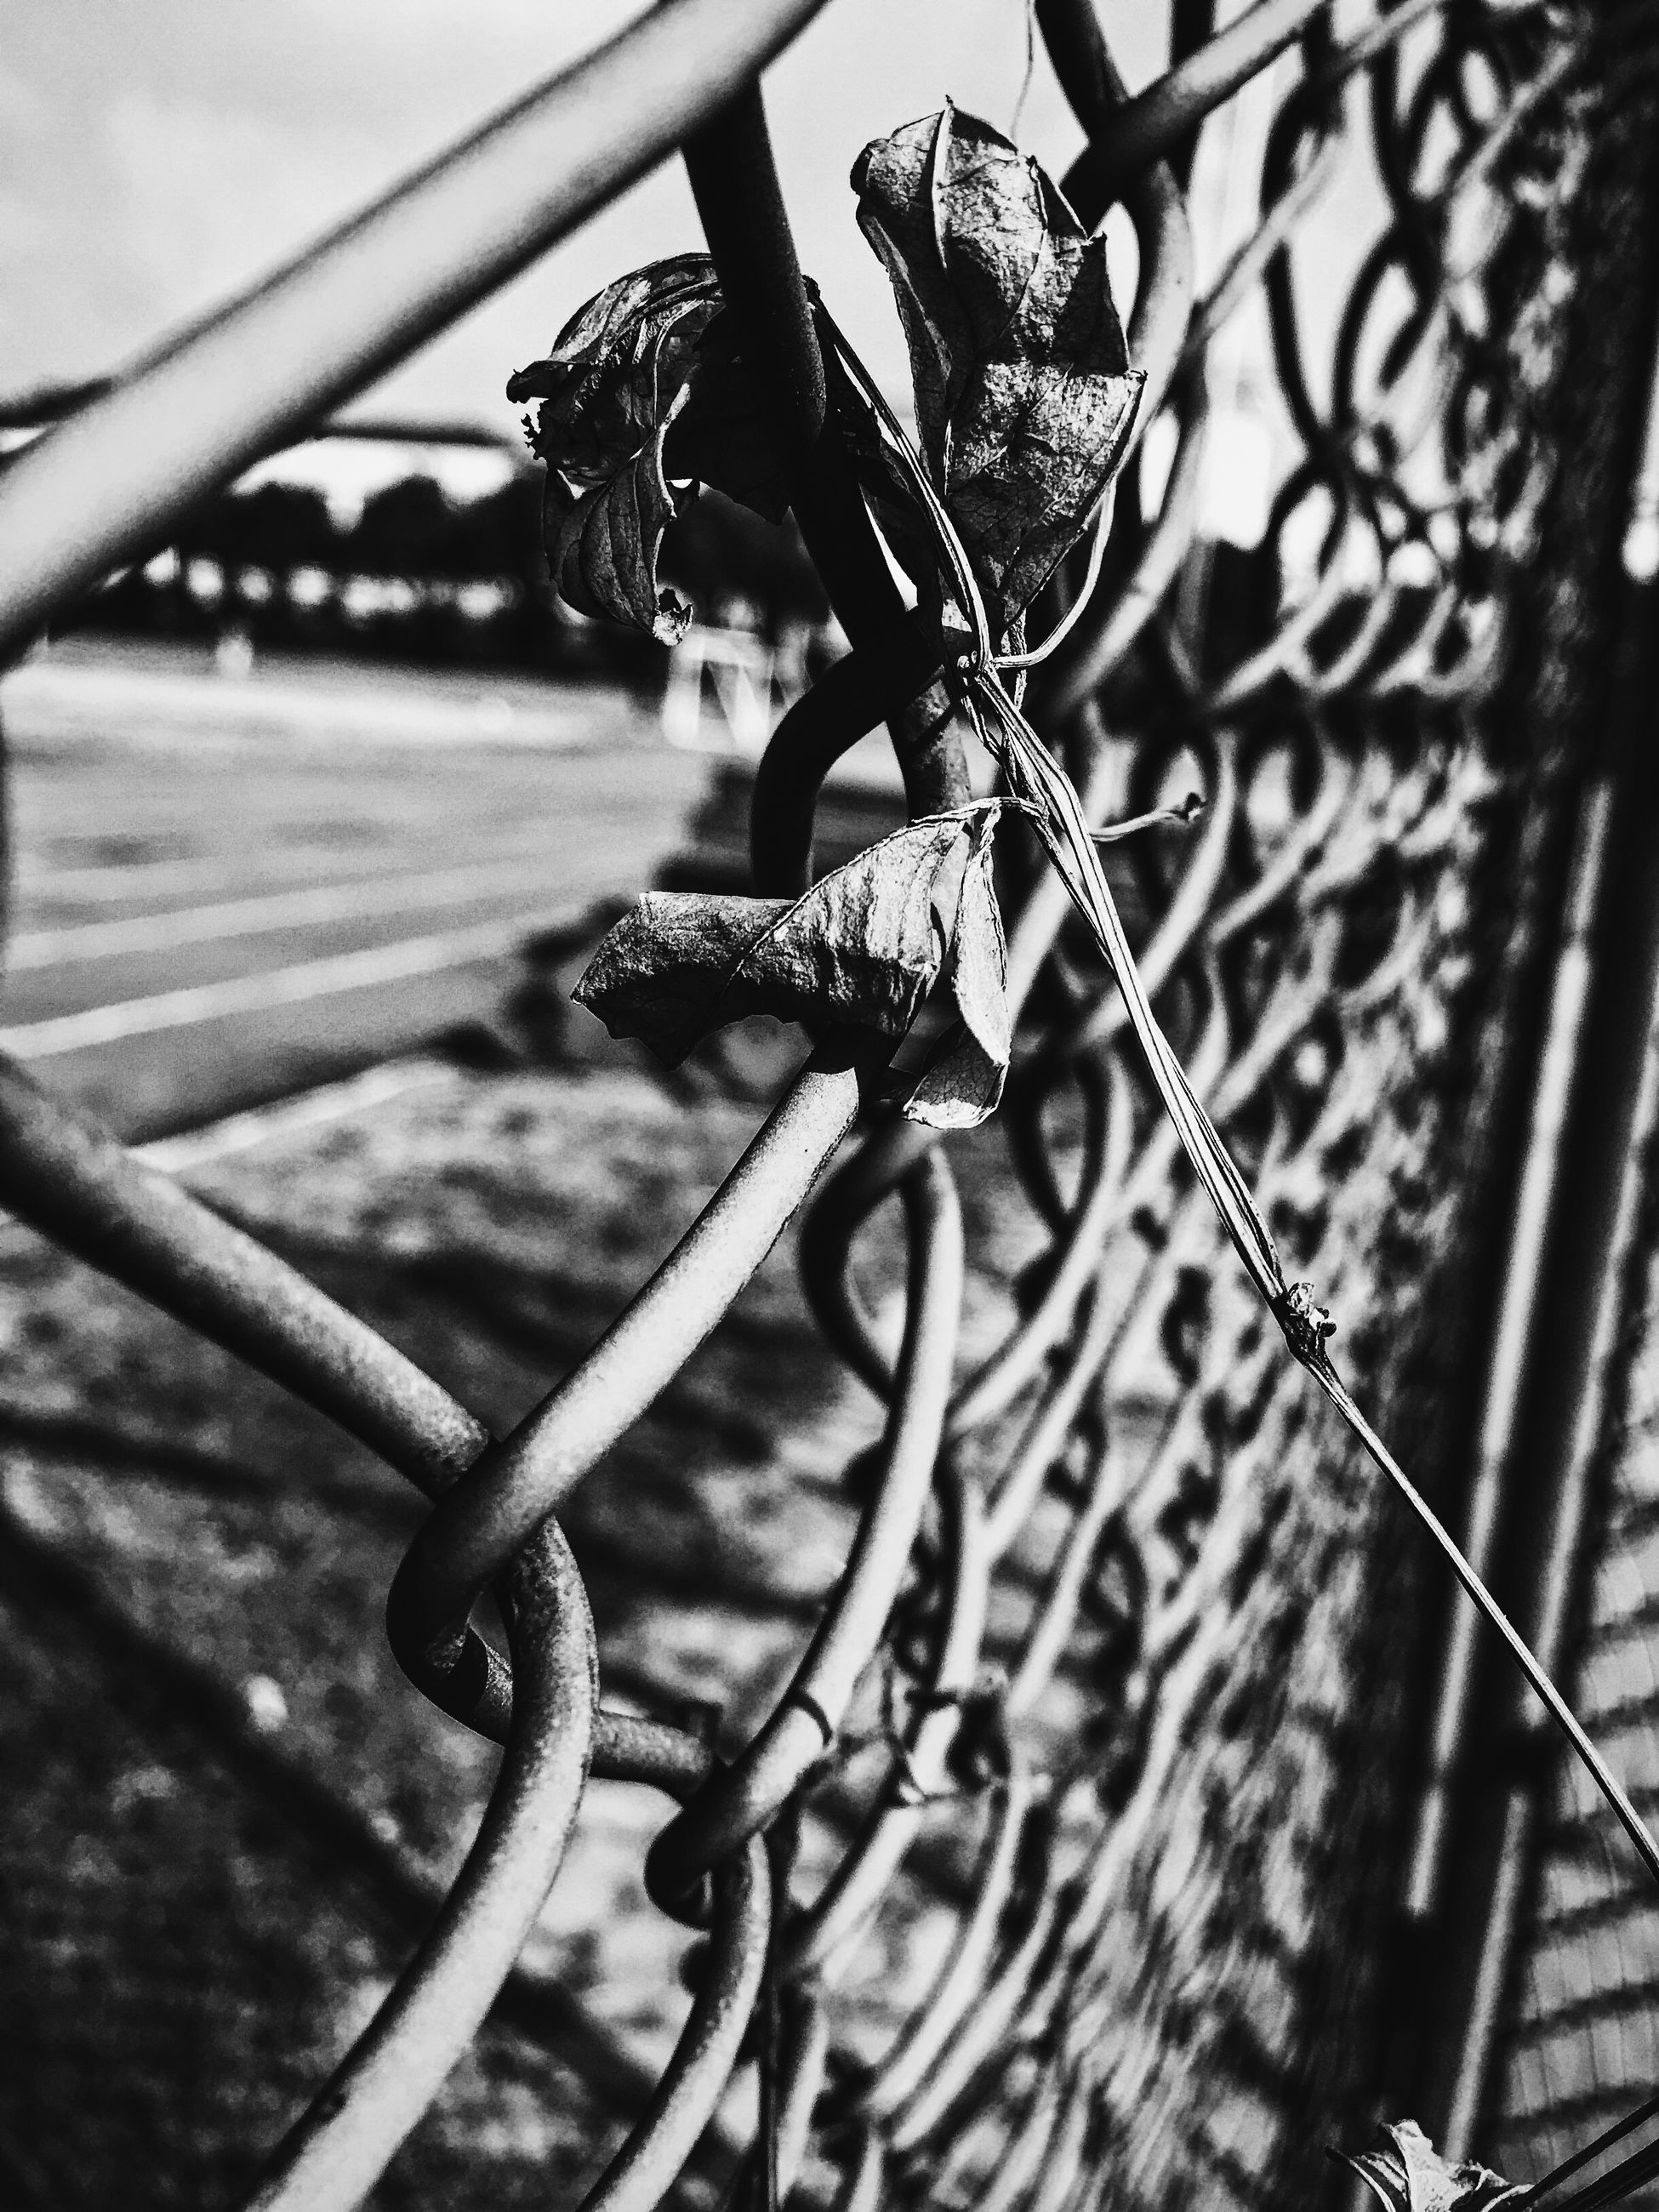 metal, chainlink fence, fence, focus on foreground, protection, close-up, railing, bicycle, metallic, safety, day, pattern, part of, sunlight, outdoors, security, no people, cropped, wheel, chain